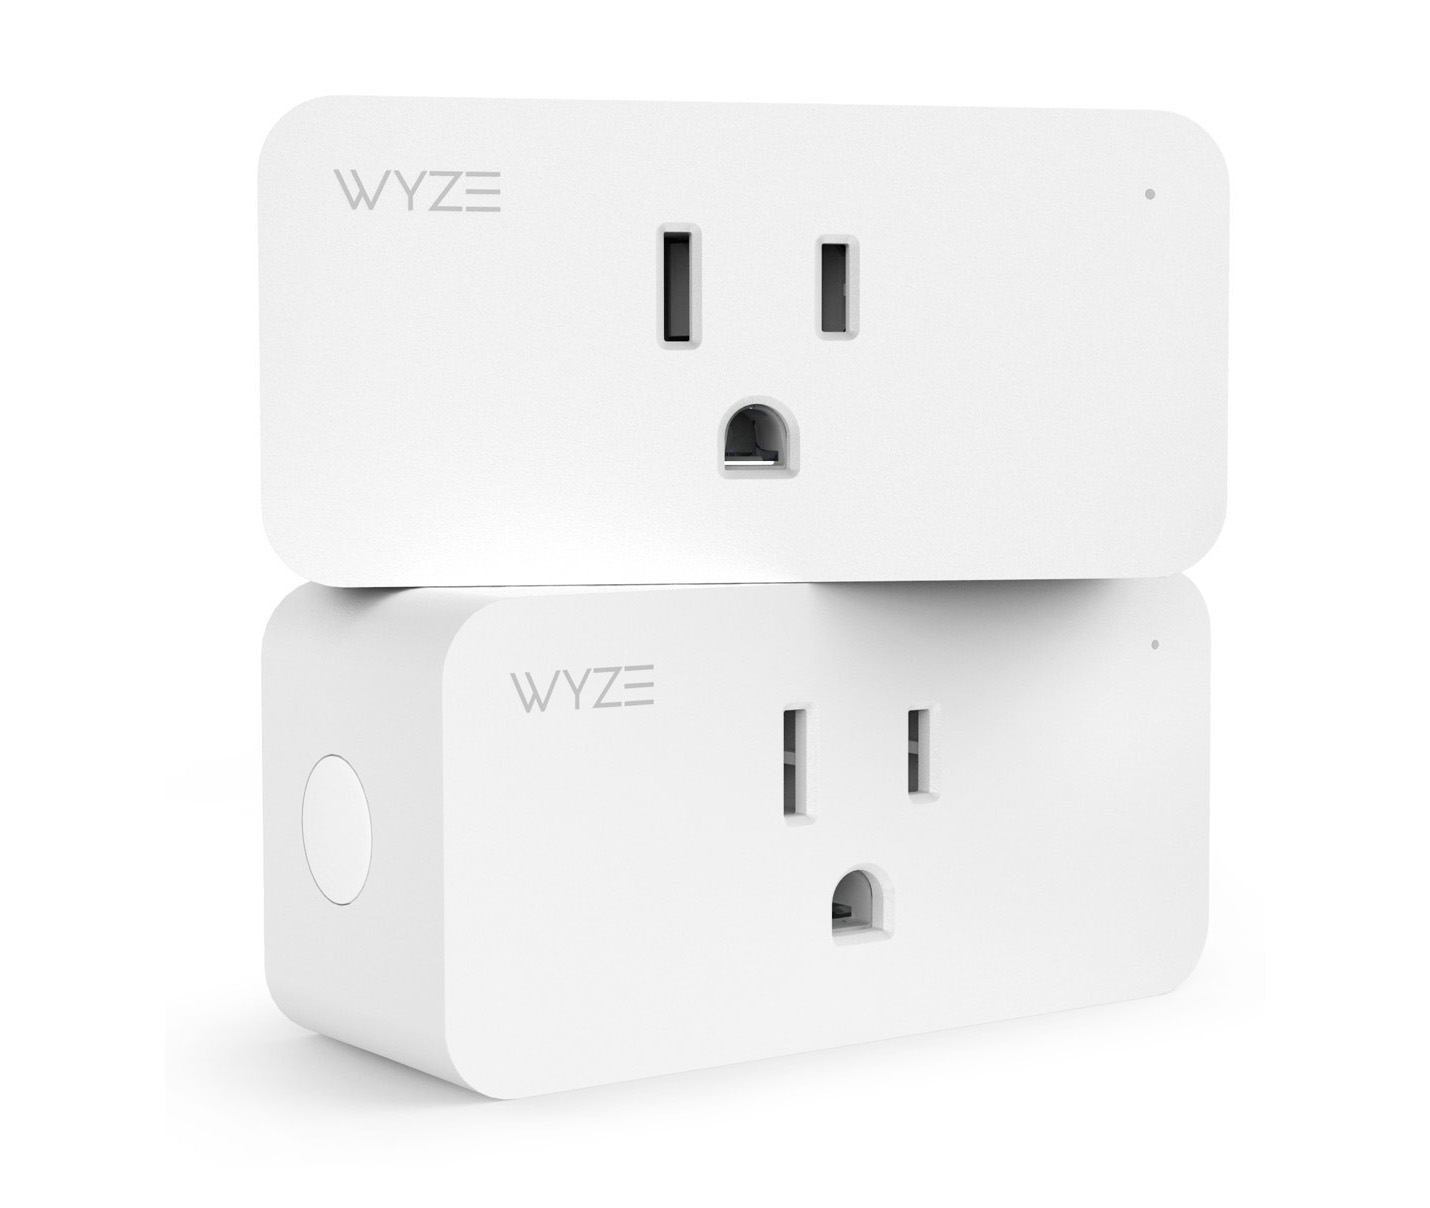 Wyze announces smart plug two-pack for $15